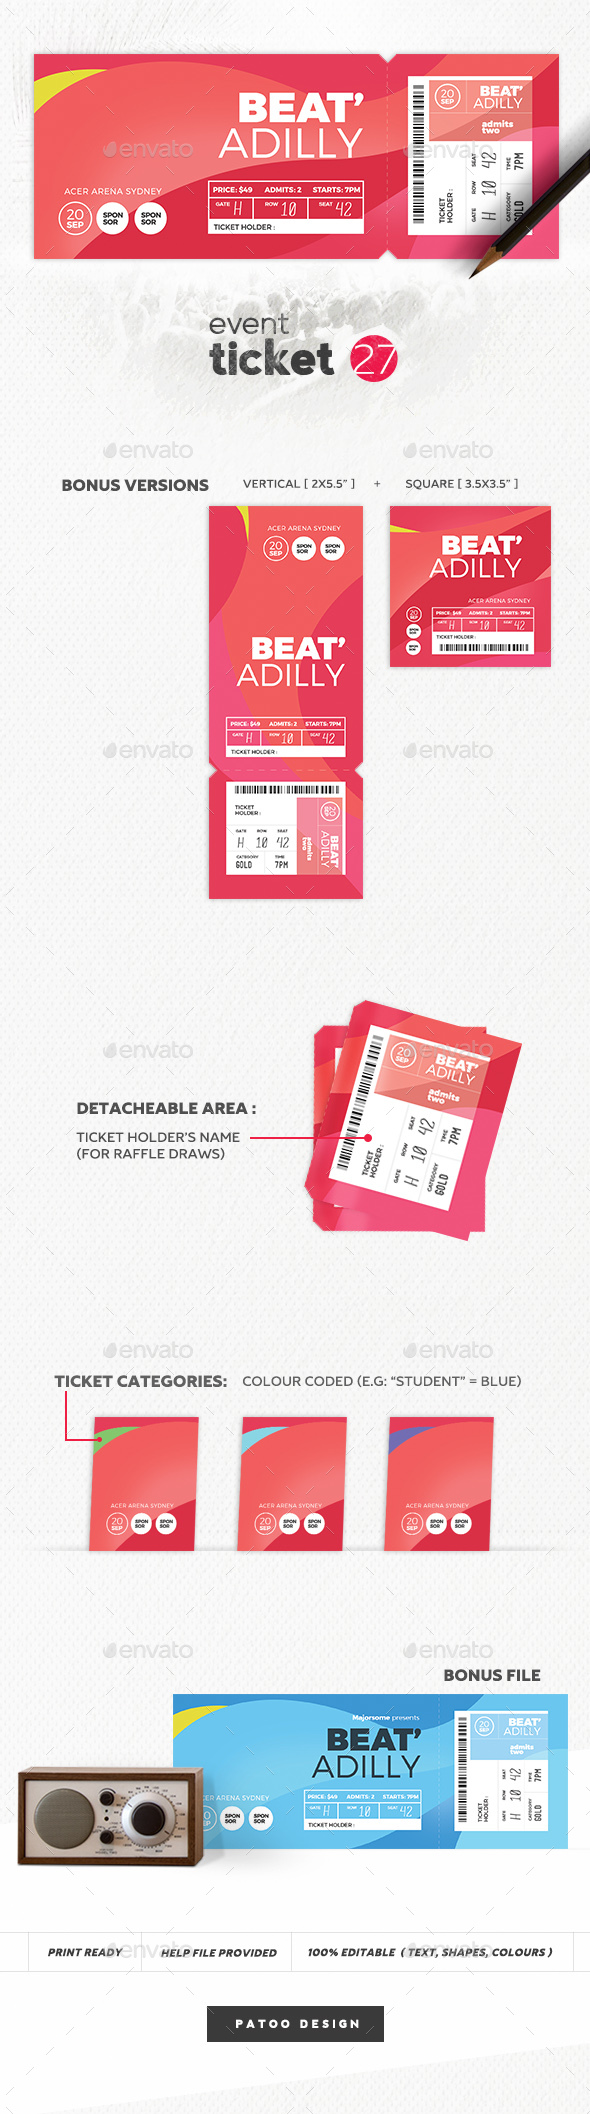 Event Ticket Template 27 - Print Templates